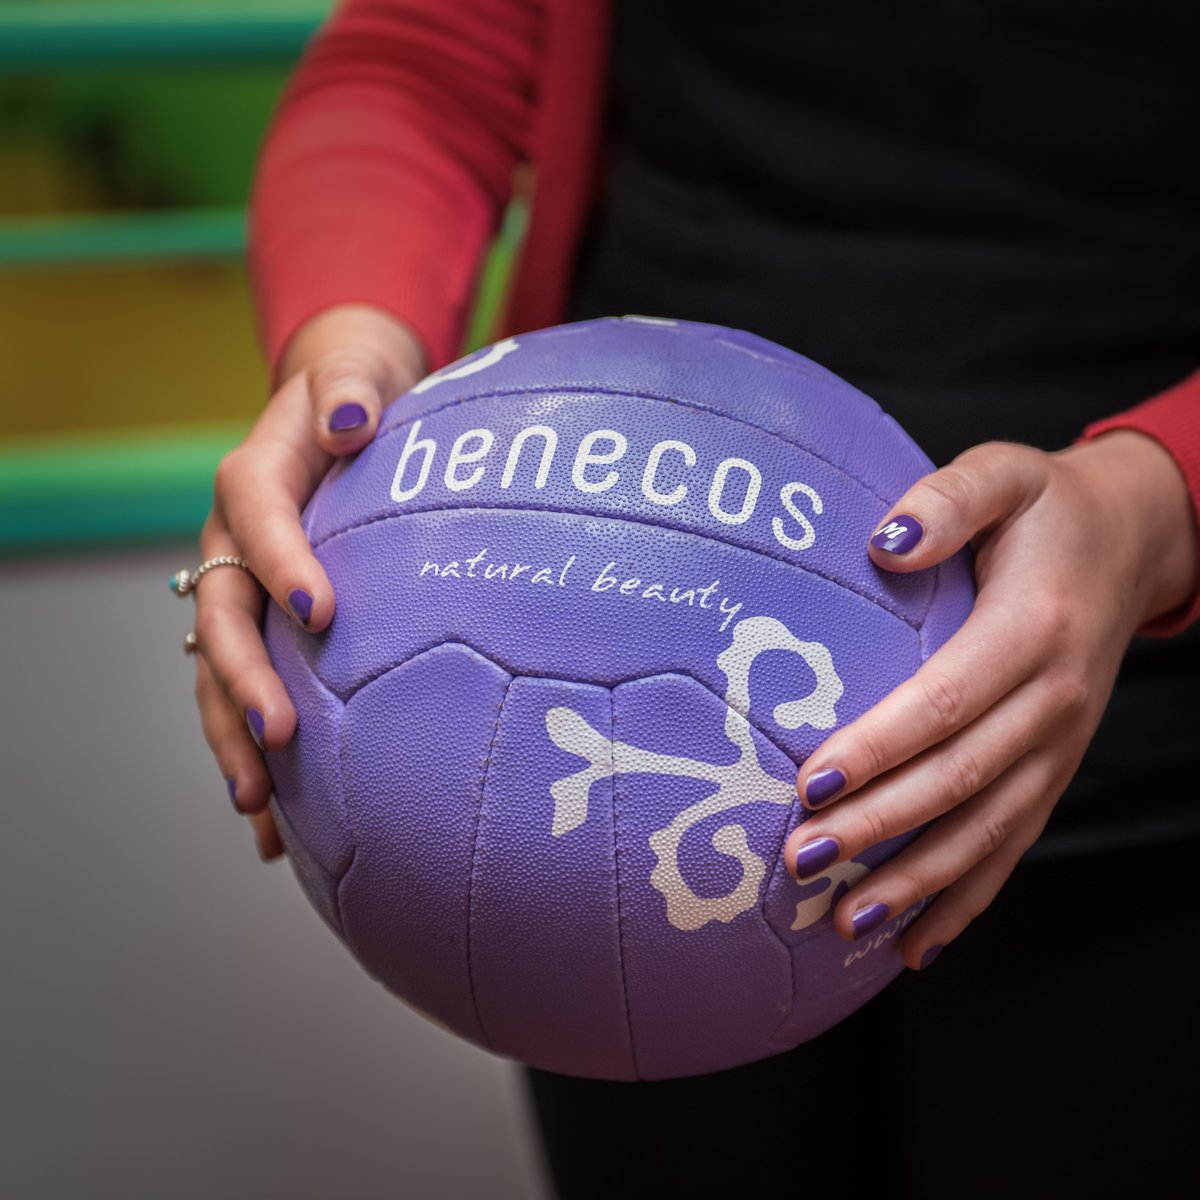 Benecos - Netball's for Clubs Initative